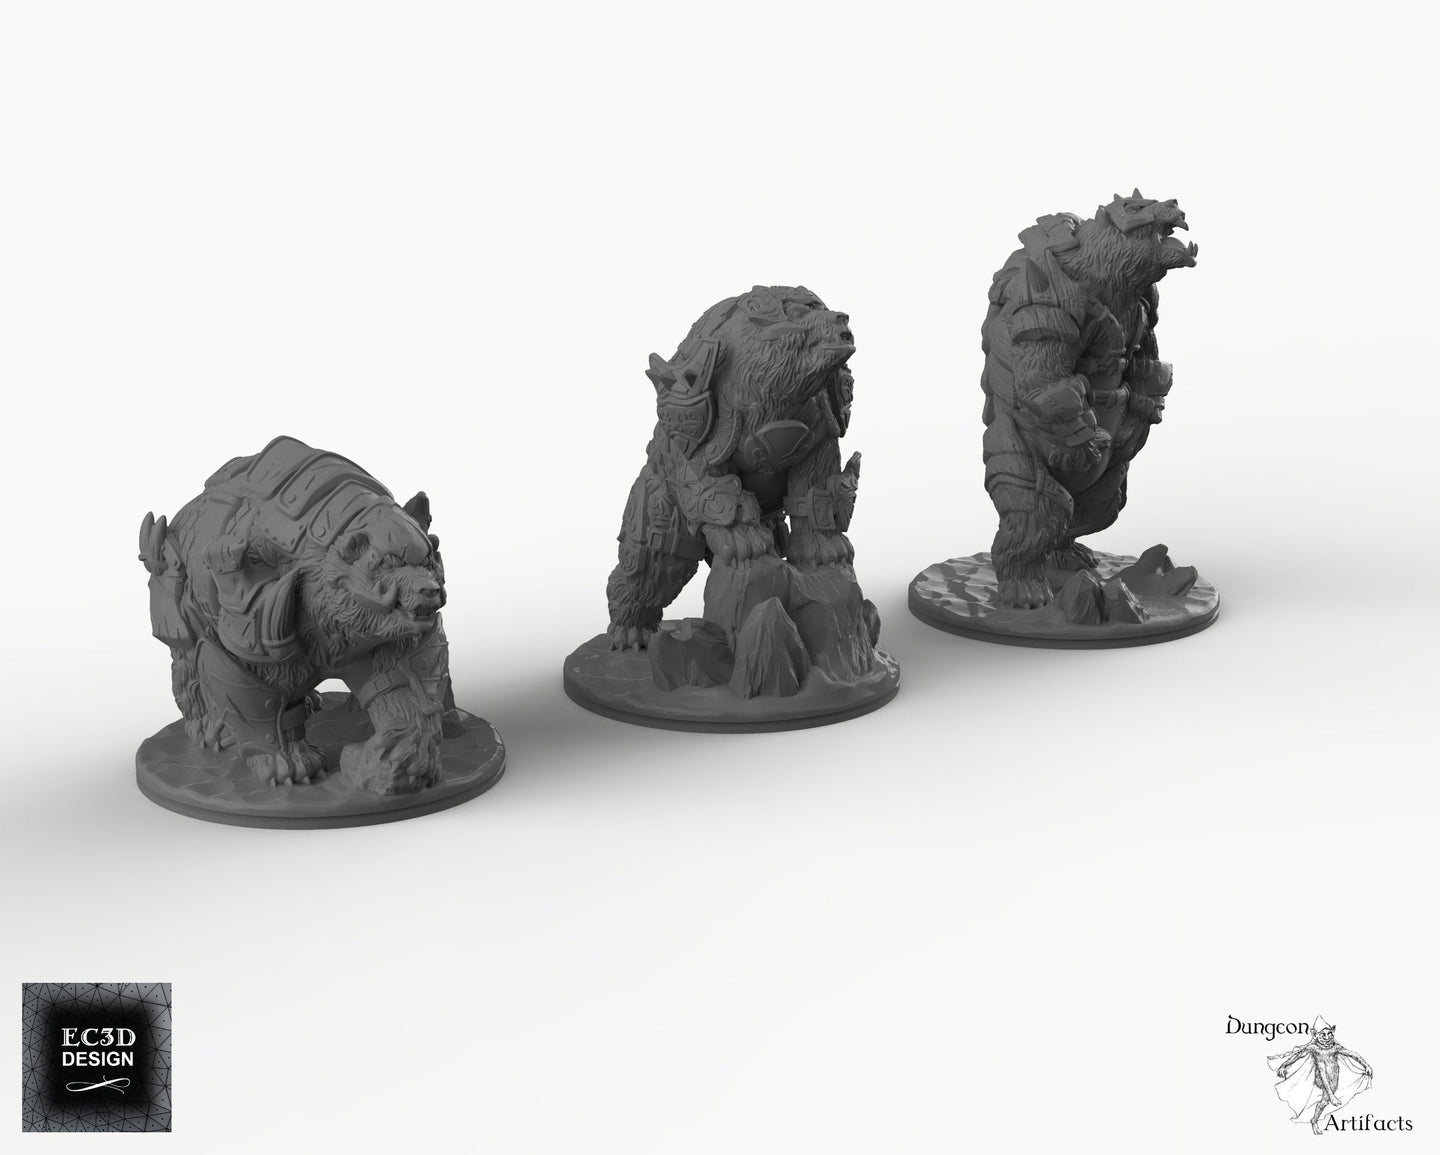 Armored Bears - Panserbjorn Panzerbjorn Wilds of Wintertide Wargaming Terrain D&D, DnD, Pathfinder, SW Legion, Warhammer